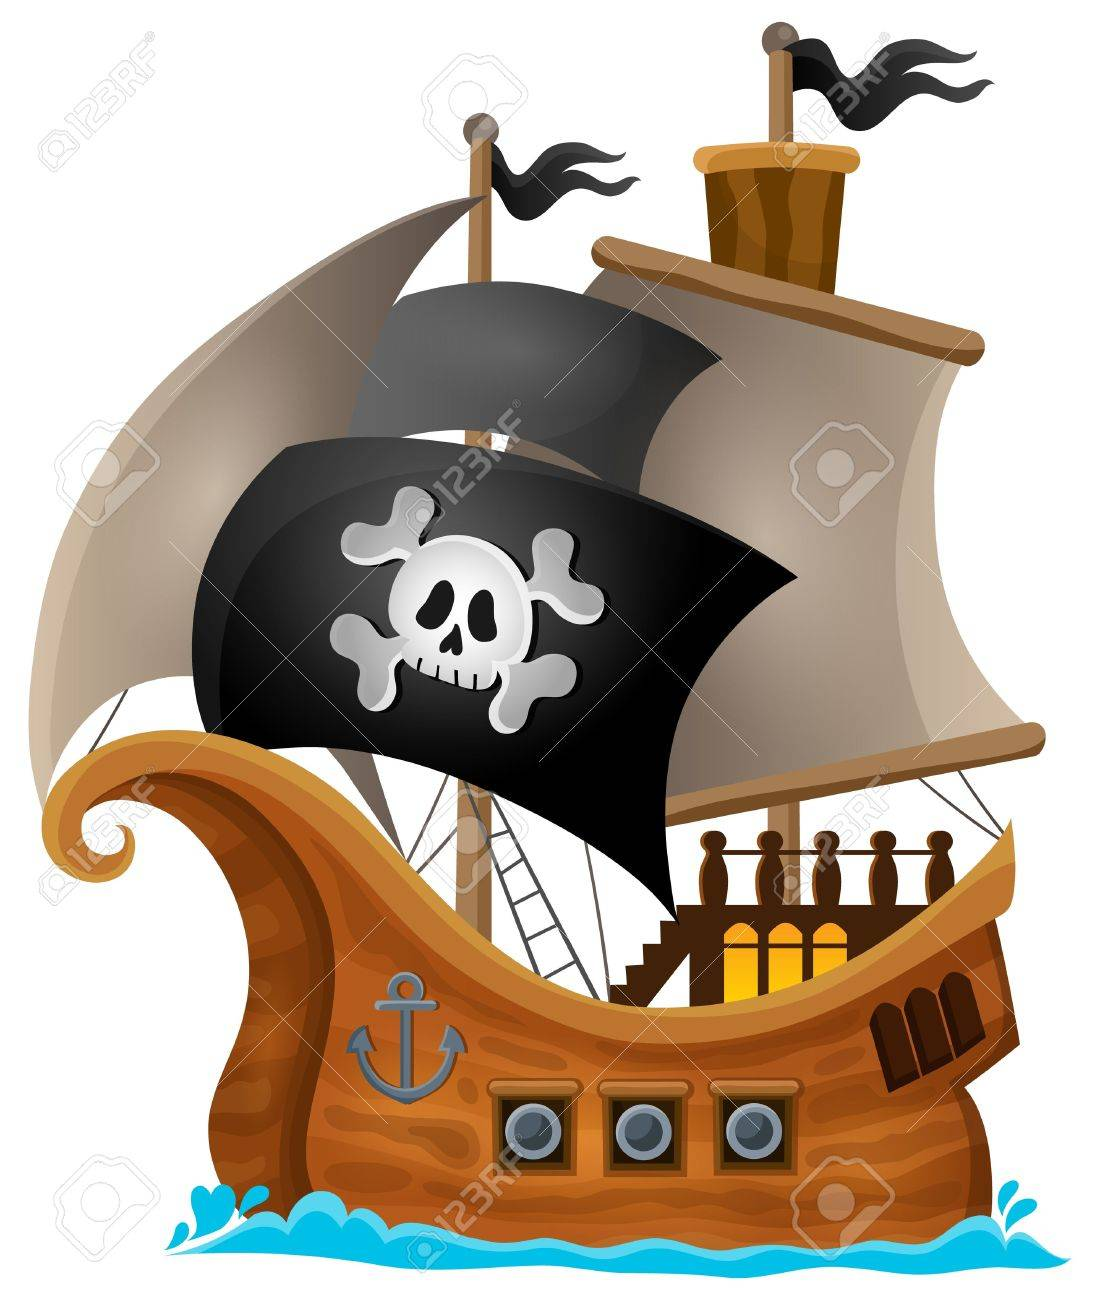 Pirate ship topic image 1 - eps10 vector illustration. Stock Vector - 41374778